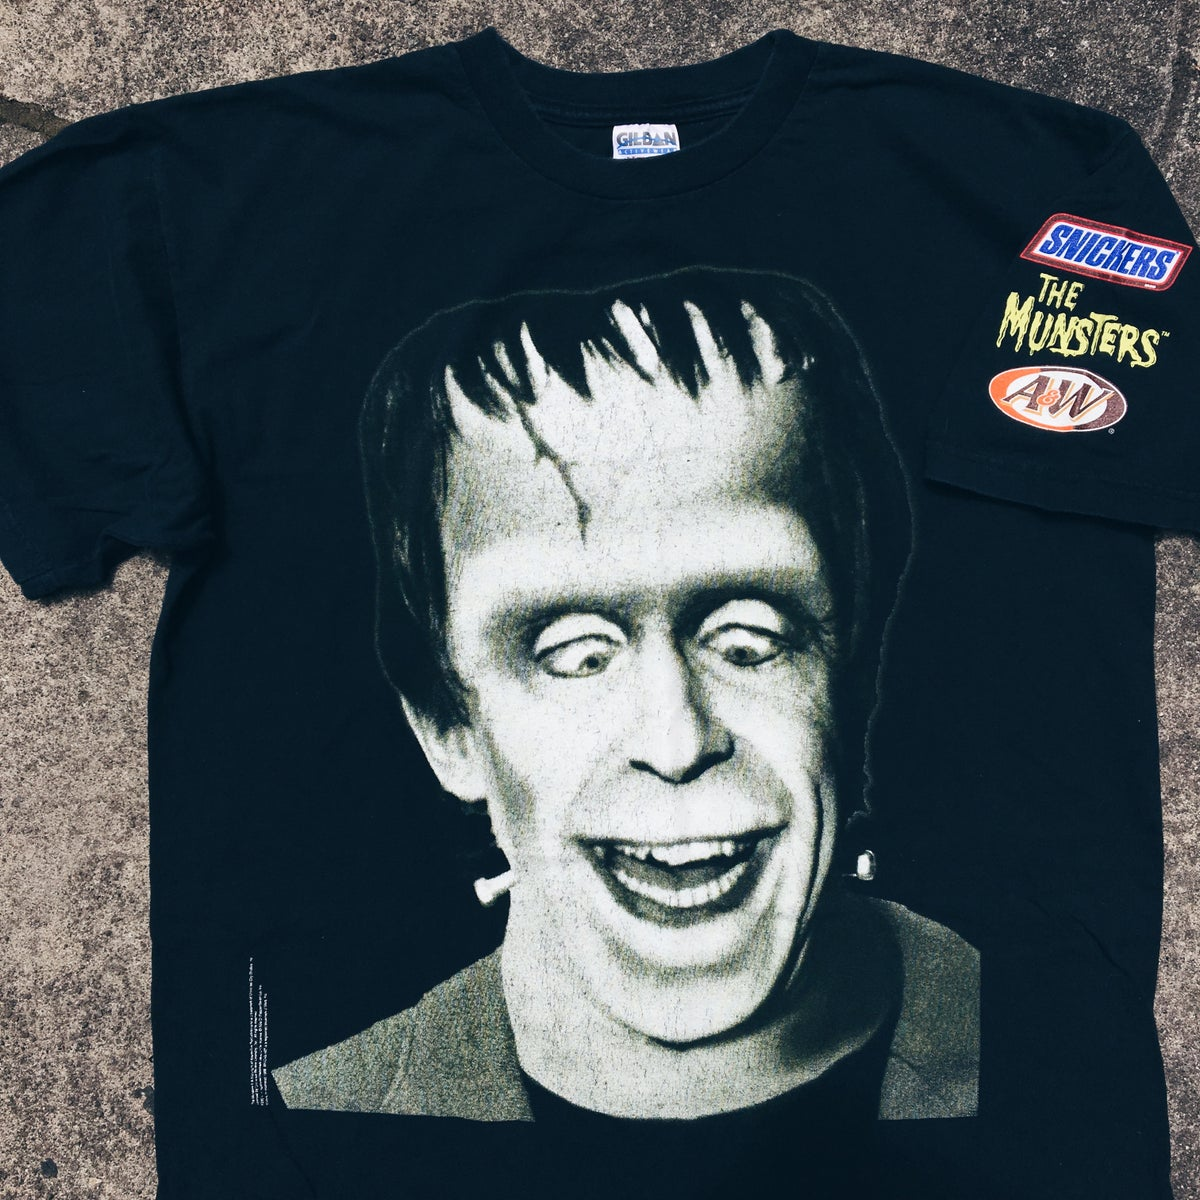 Image of Original 1998 The Munsters Snickers Promo Tee.